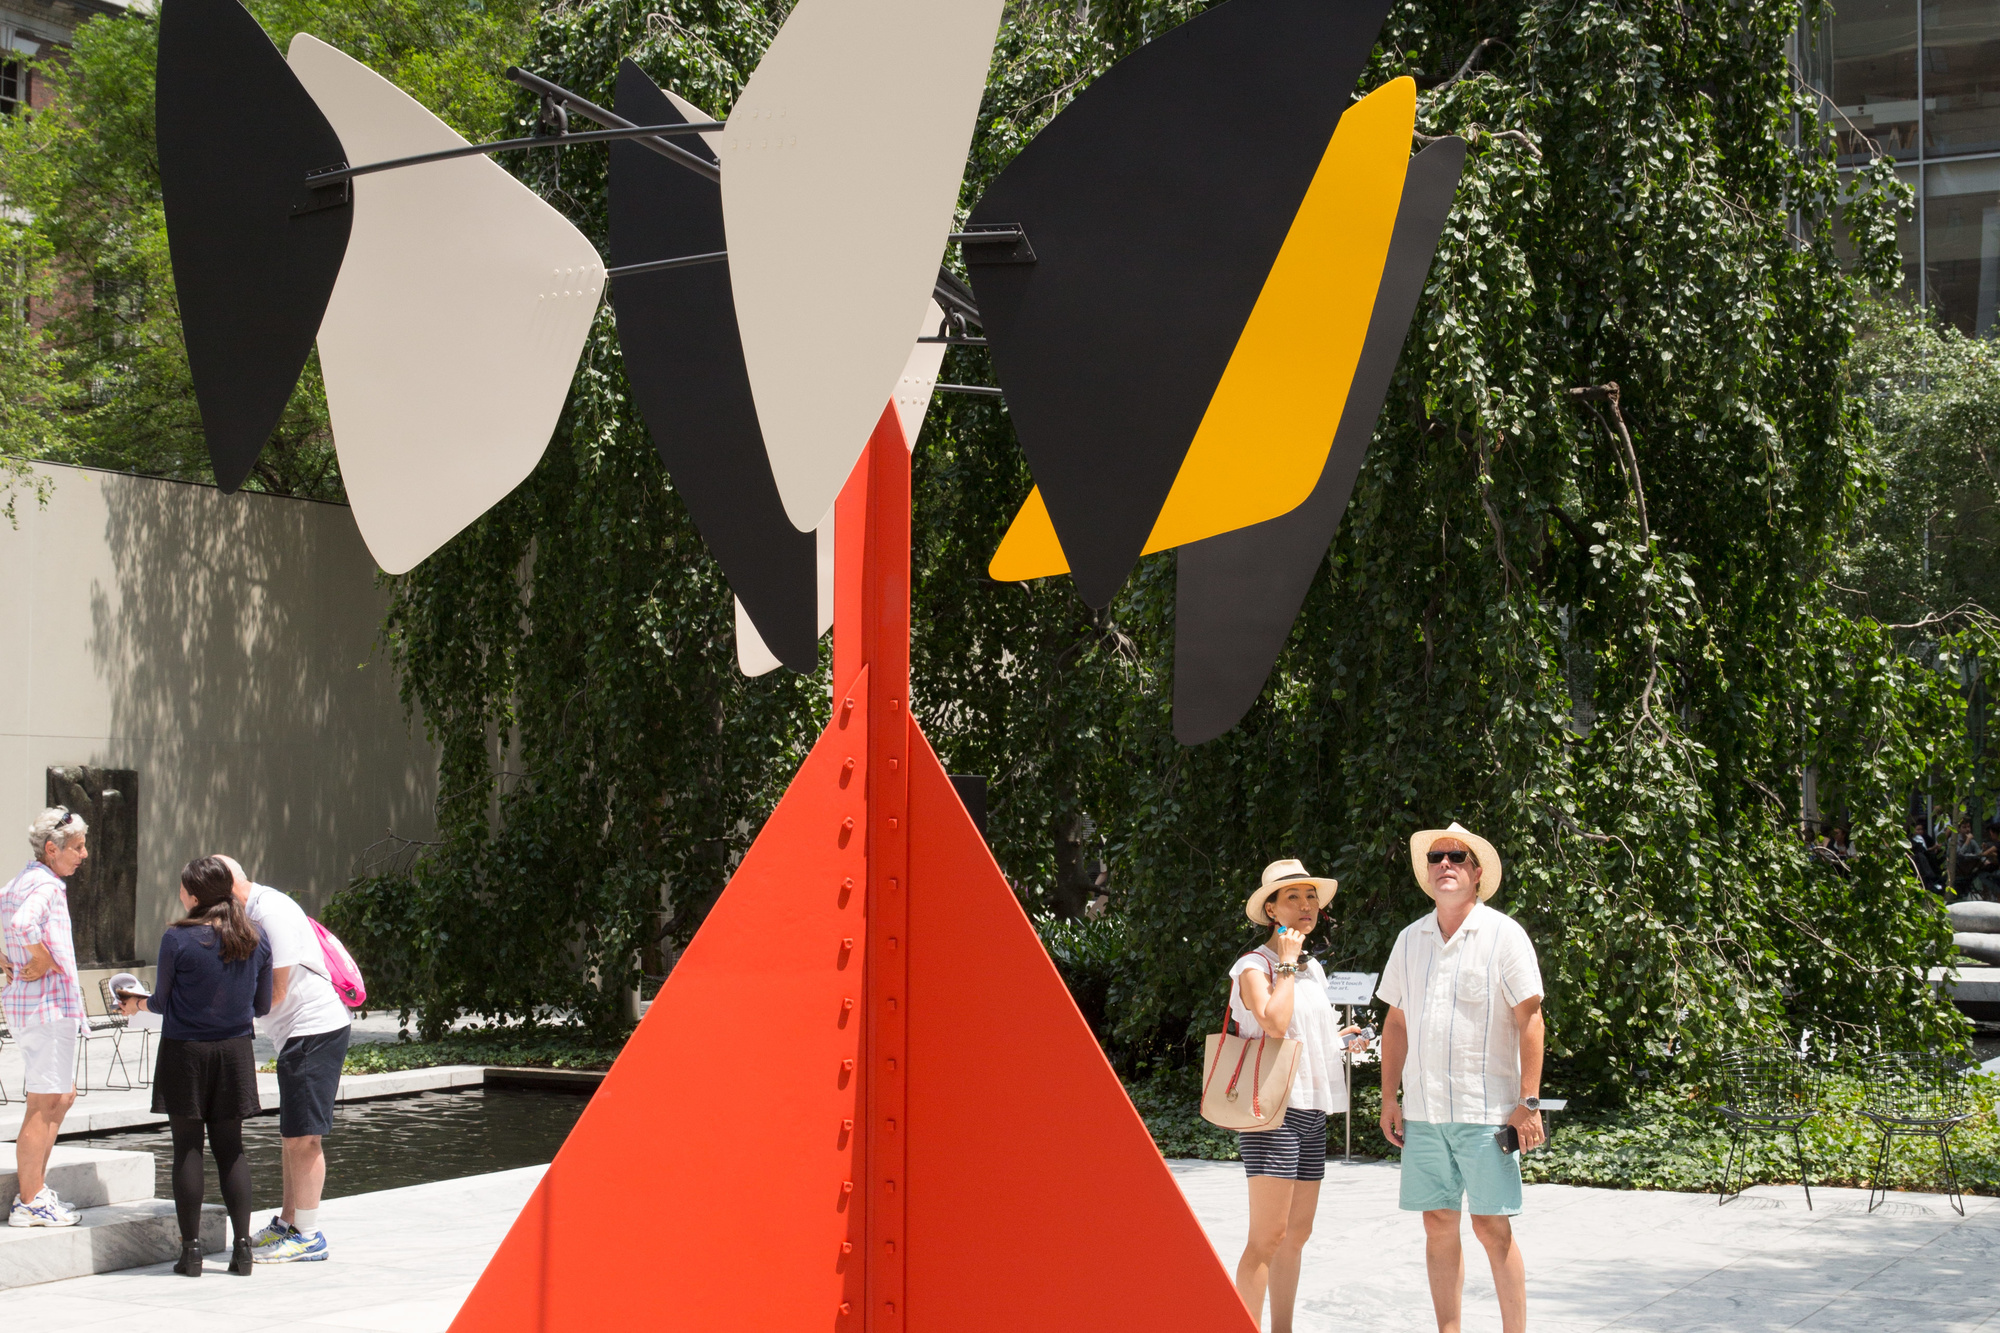 Image of The Abby Aldrich Rockefeller Sculpture Garden at The Museum of Modern Art. Pictured: Alexander Calder. Sandy's Butterfly. 1964. Painted sheet steel and iron rods. Gift of the artist. © 2016 Calder Foundation, New York/Artists Rights Society (ARS), New York. Photos: Gus Powell